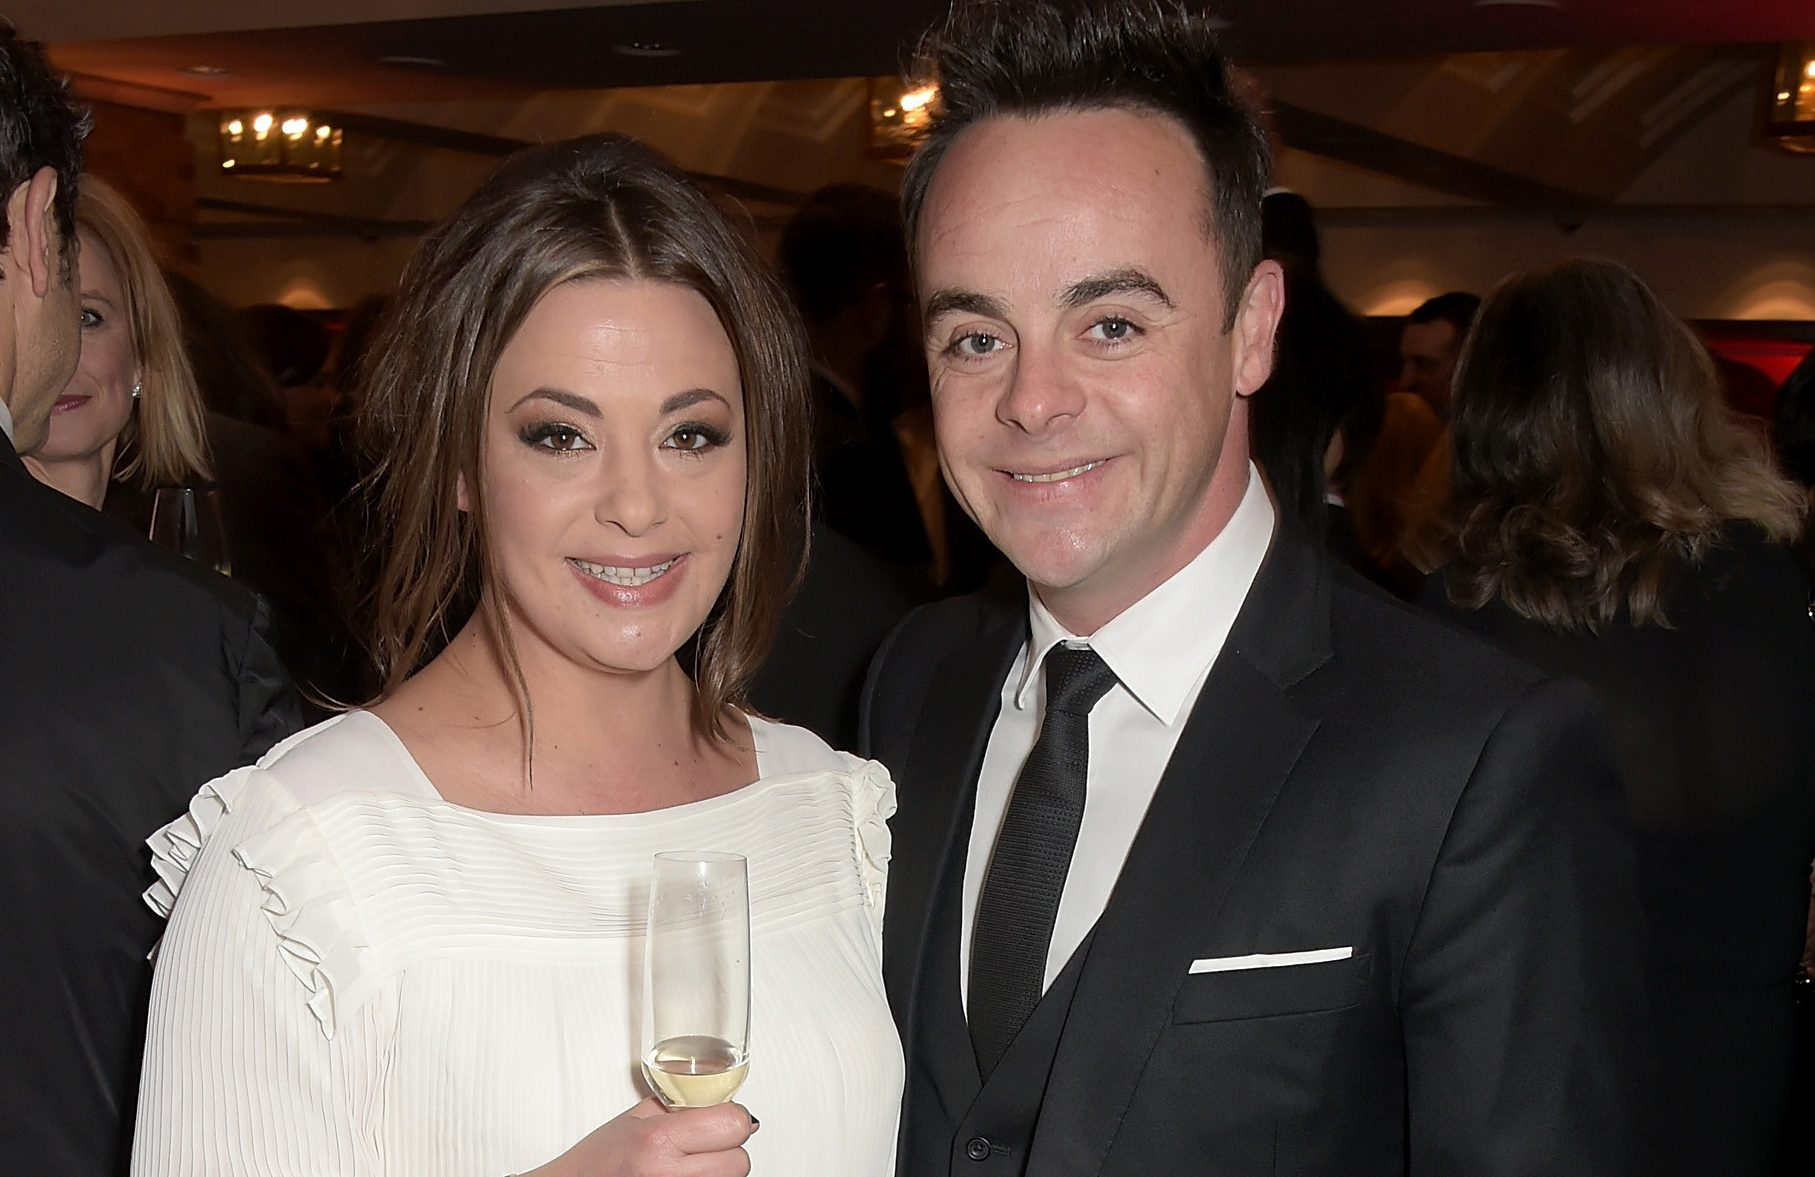 Ant McPartlin and Lisa Armstrong's divorce 'in deadlock, like Brexit' amid Anne-Marie Corbett romance